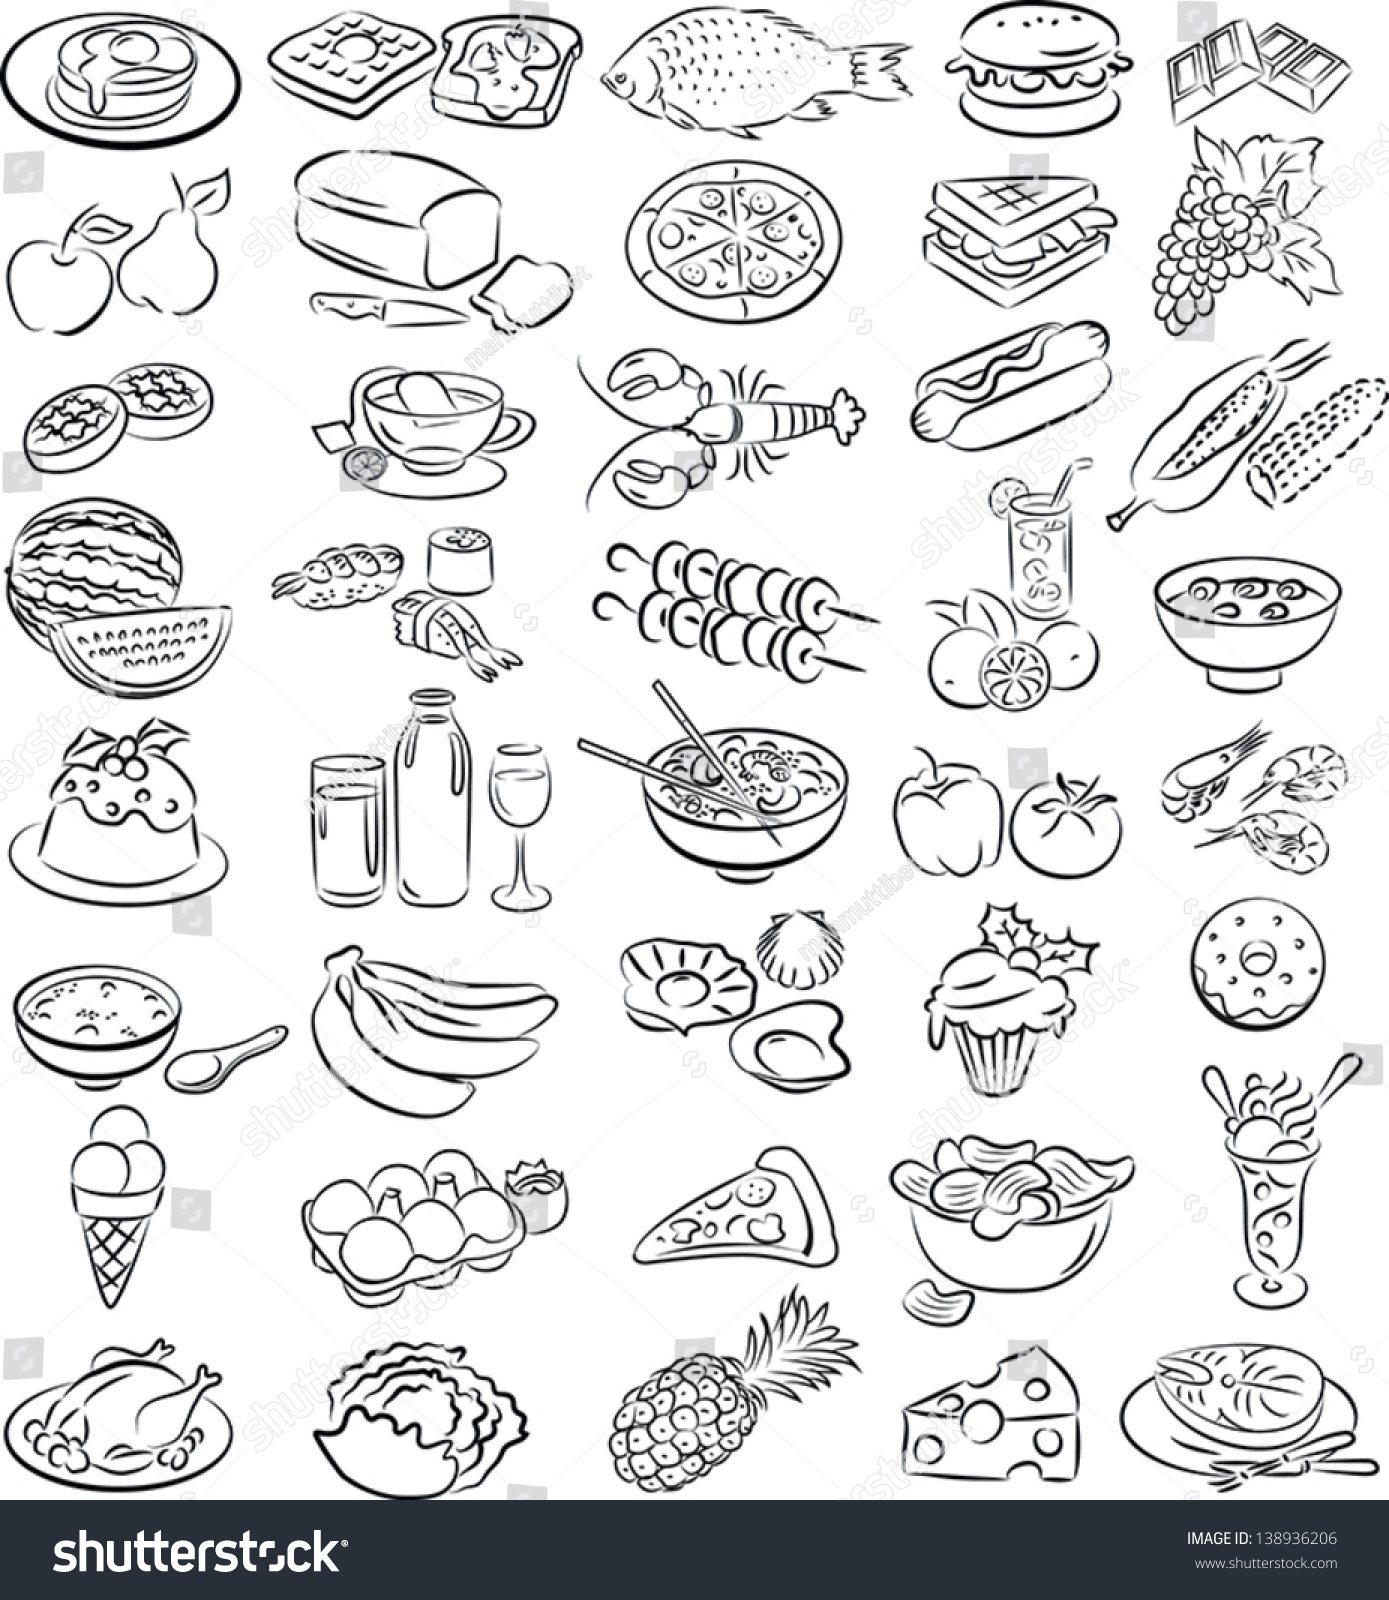 Line Art Food : Vector illustration food collection line art stock